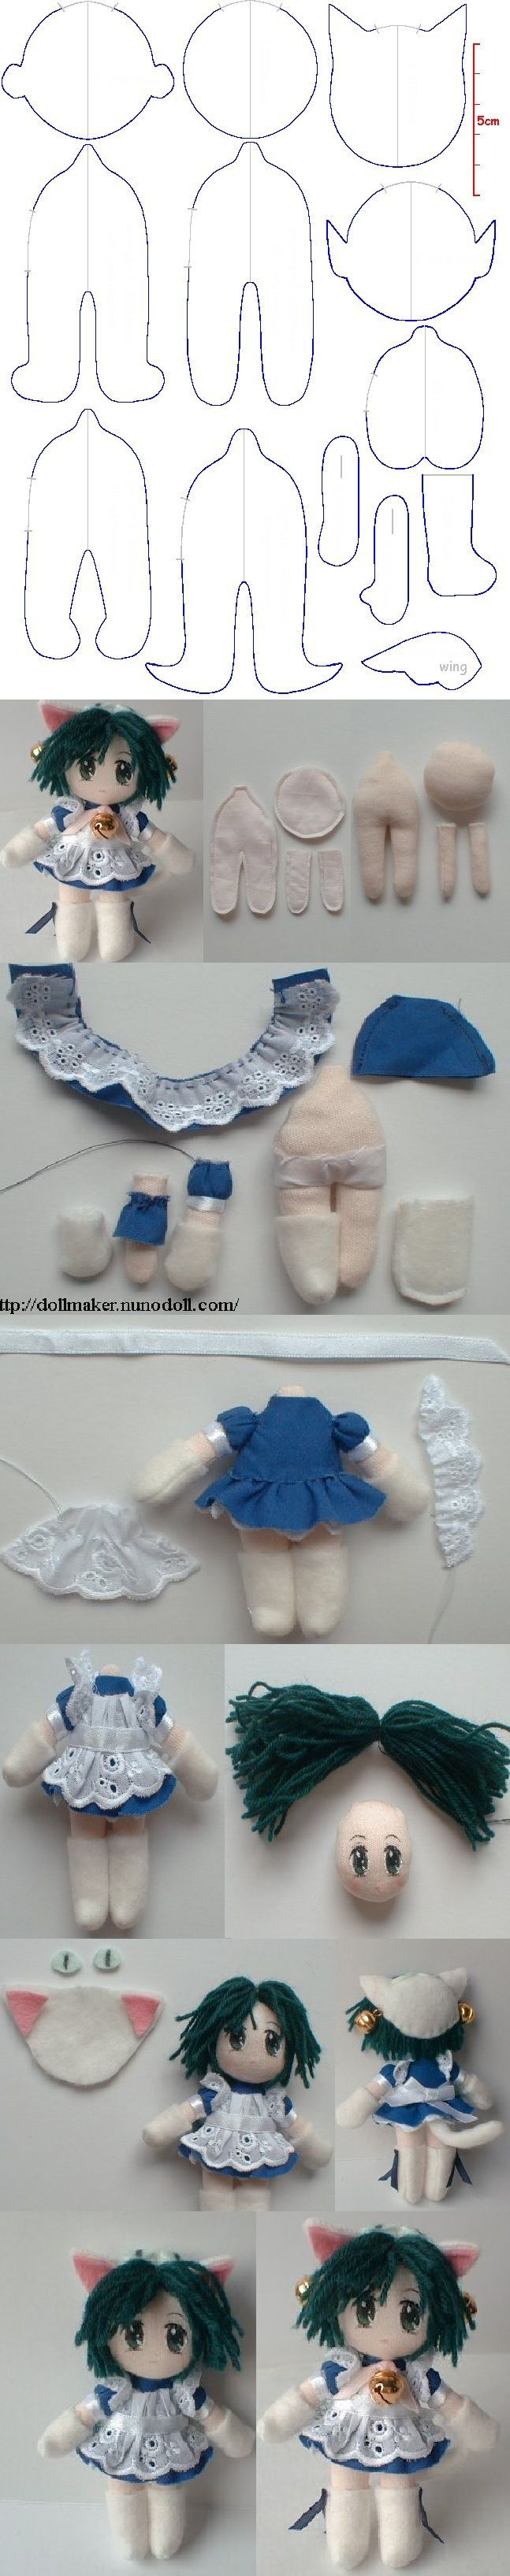 Mini doll of Di Gi Charat (Princess Dejiko) Pattern for 4 inches dollmaker.nunodol... dollmaker.nunodol...